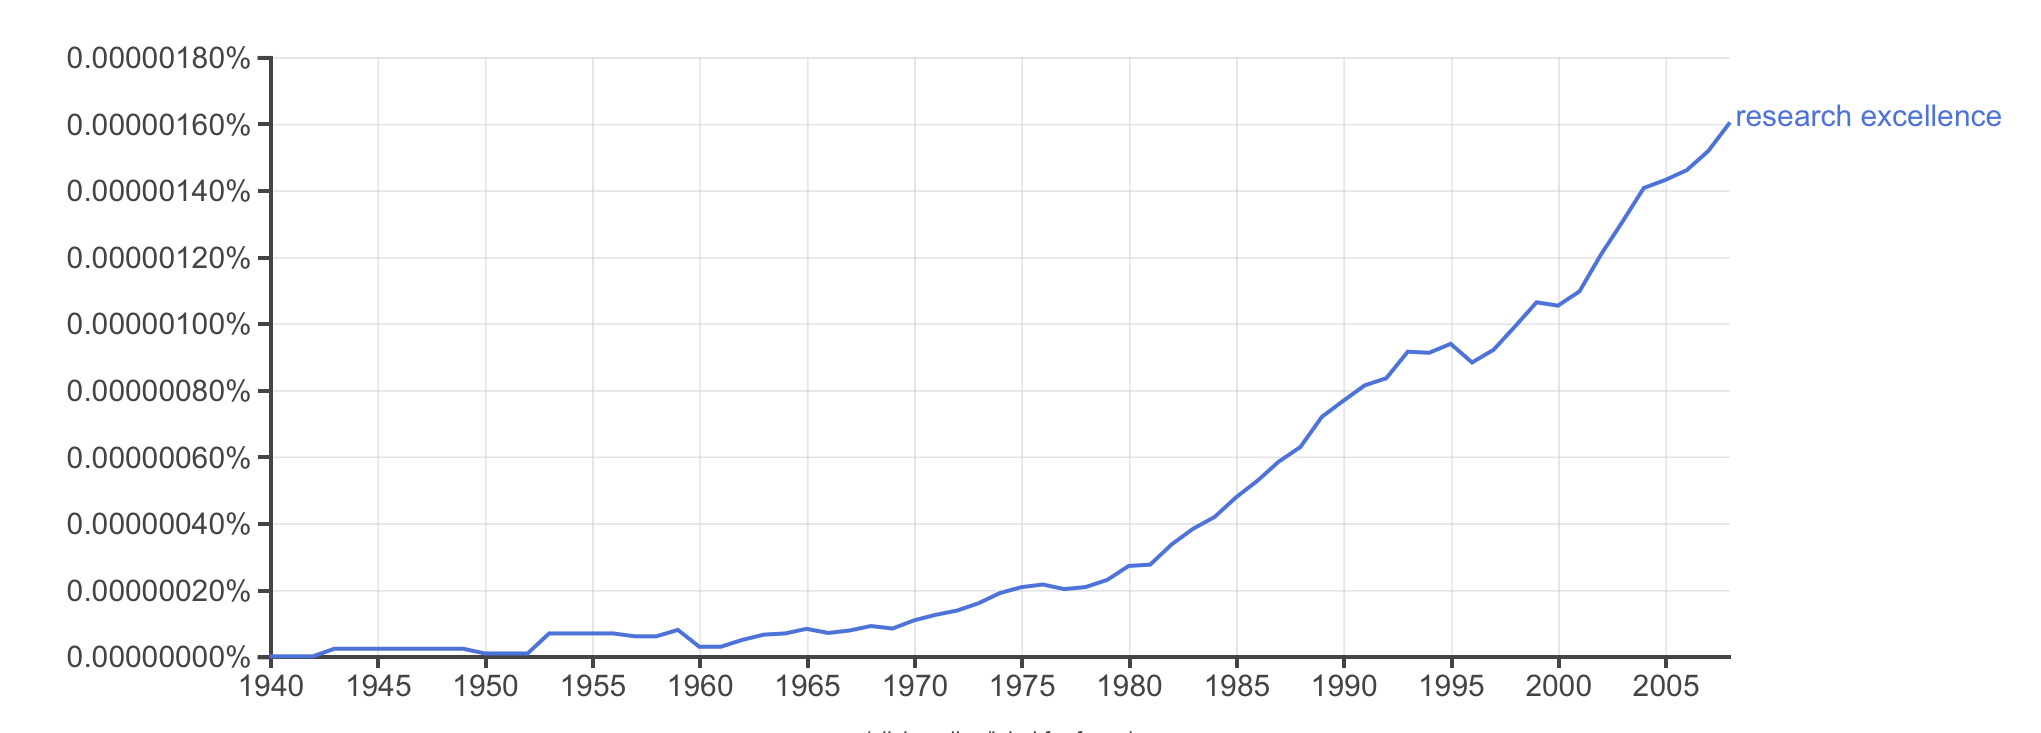 Google ngram for research excellence